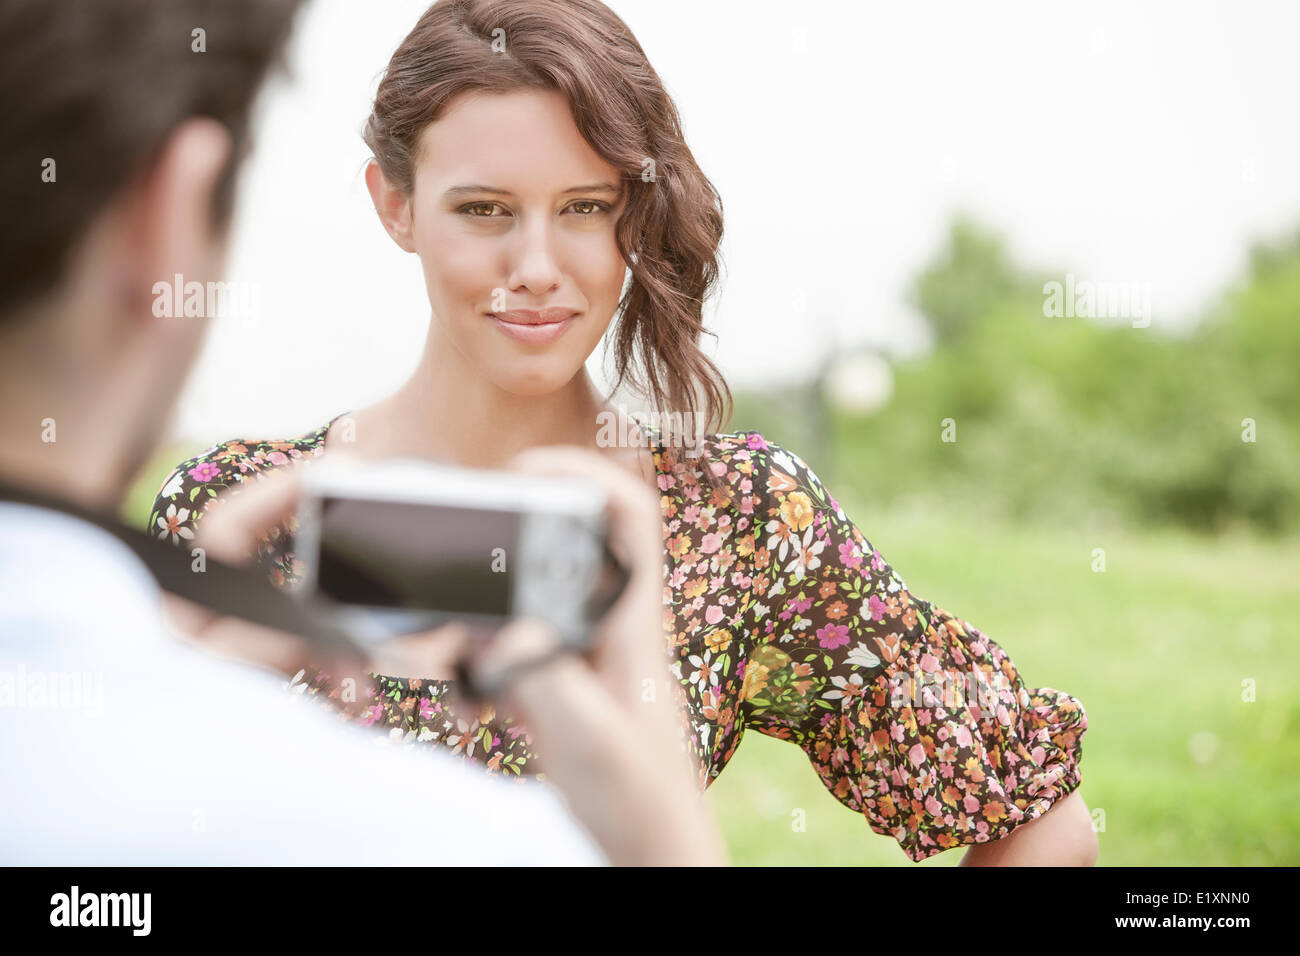 Portrait of confident woman being photographed by man in park - Stock Image